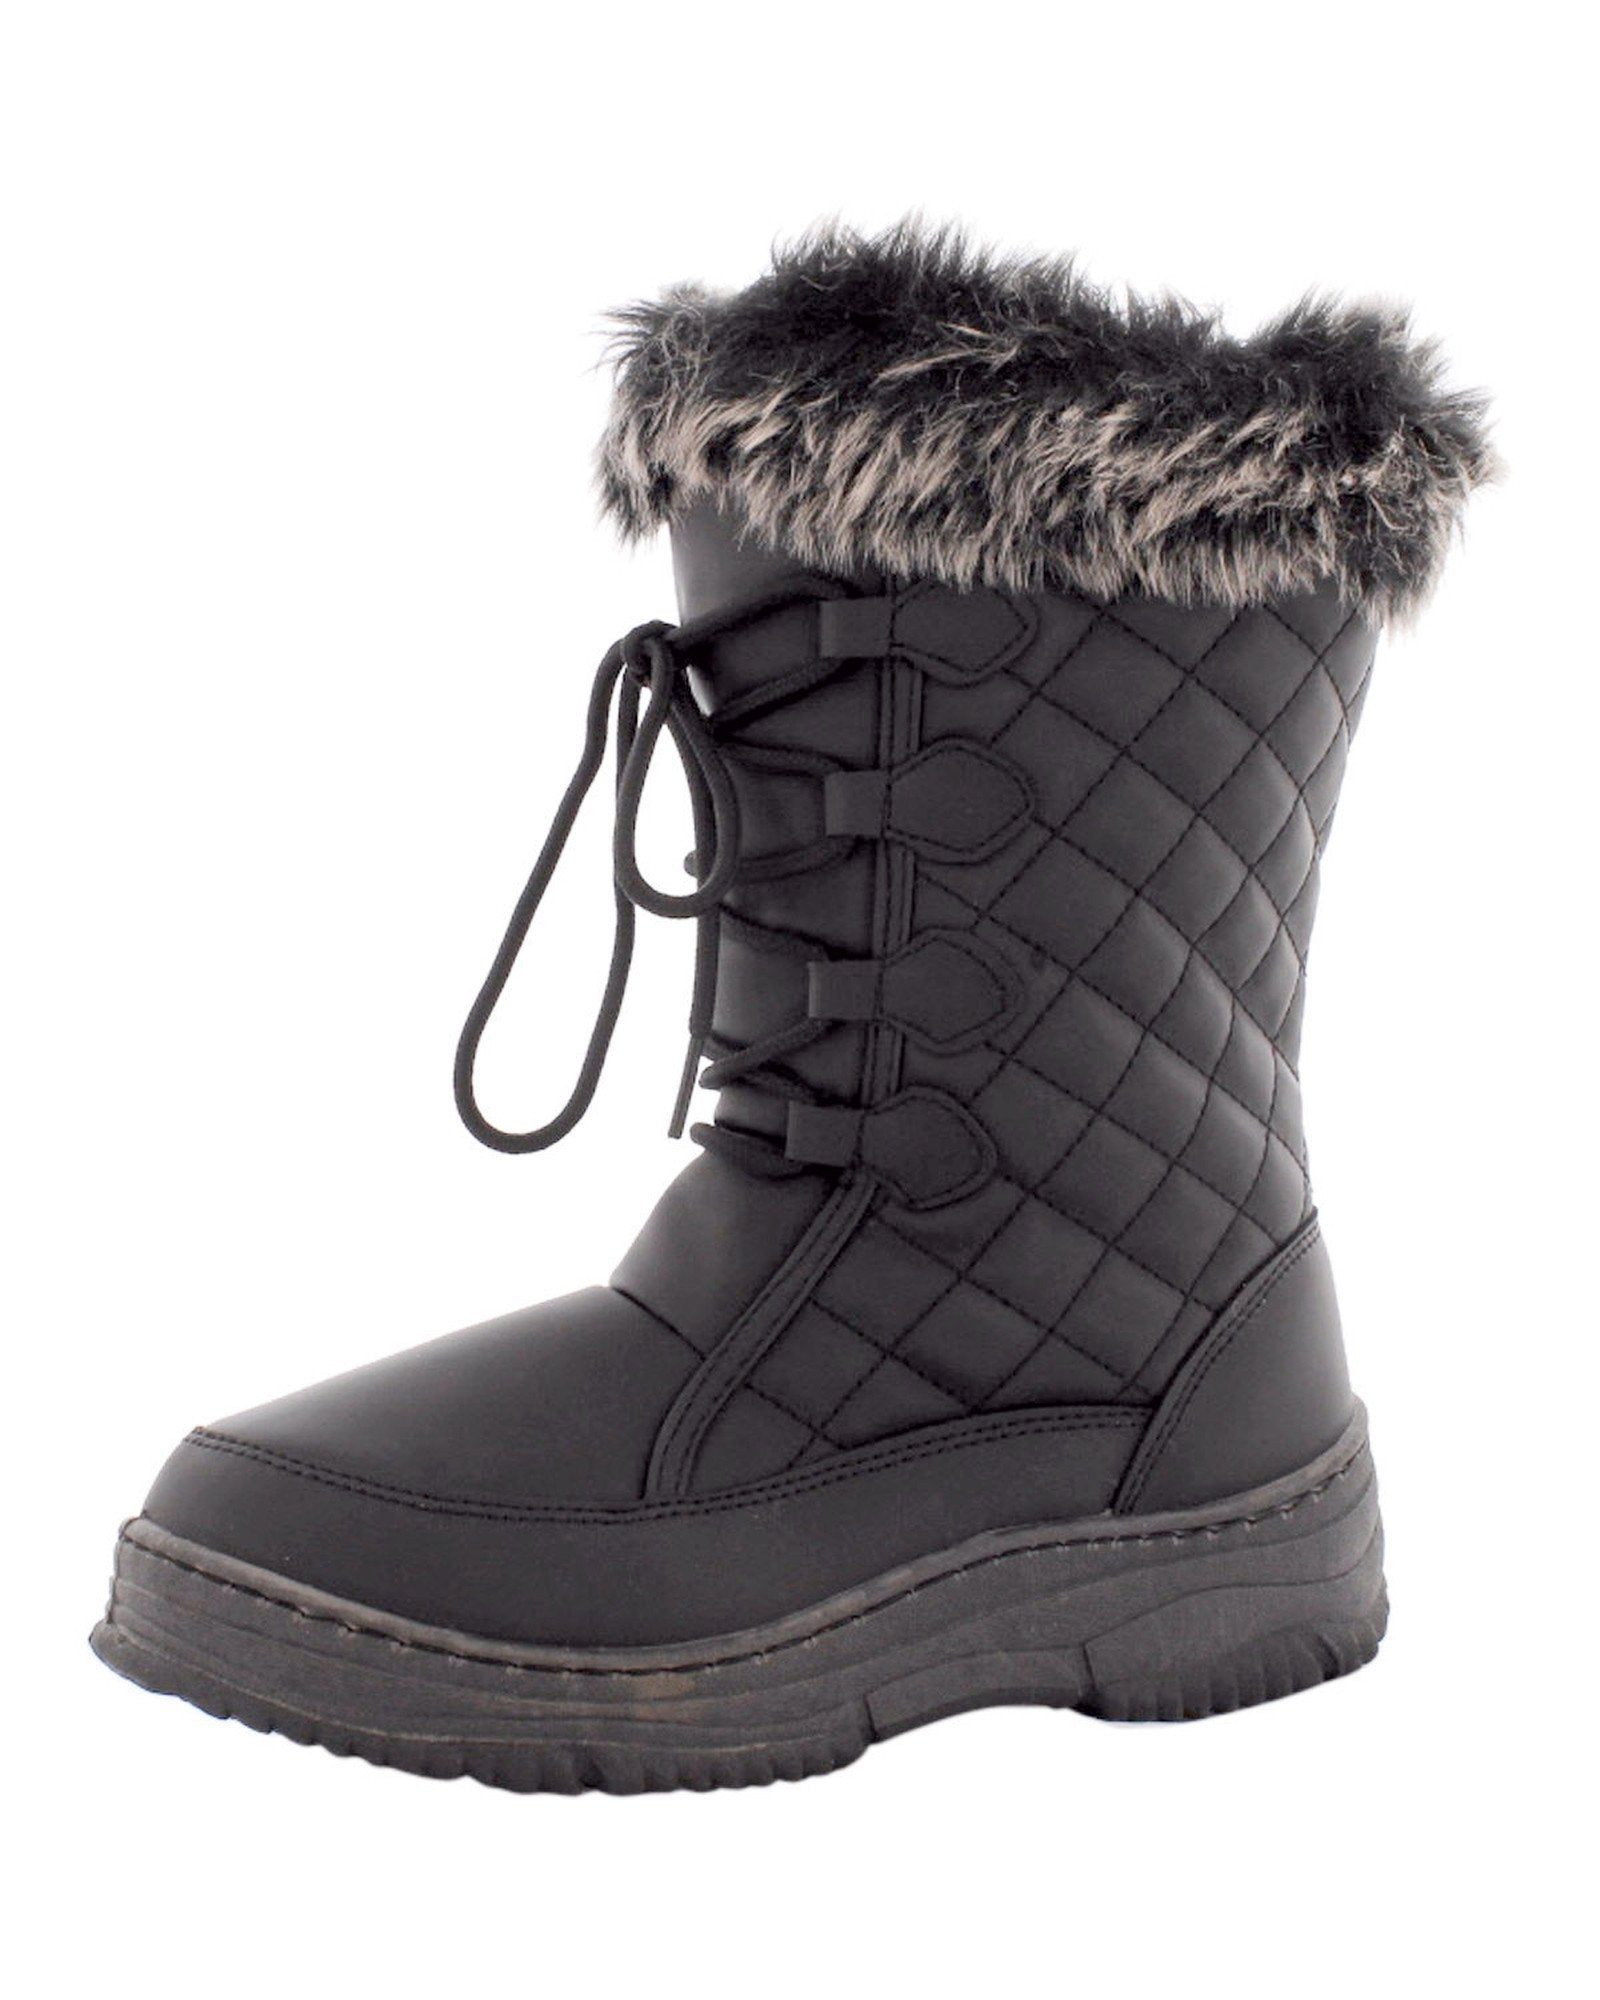 Anna Almeida - Women's Quilted Snow Boot- Black - V.I.M. - 2